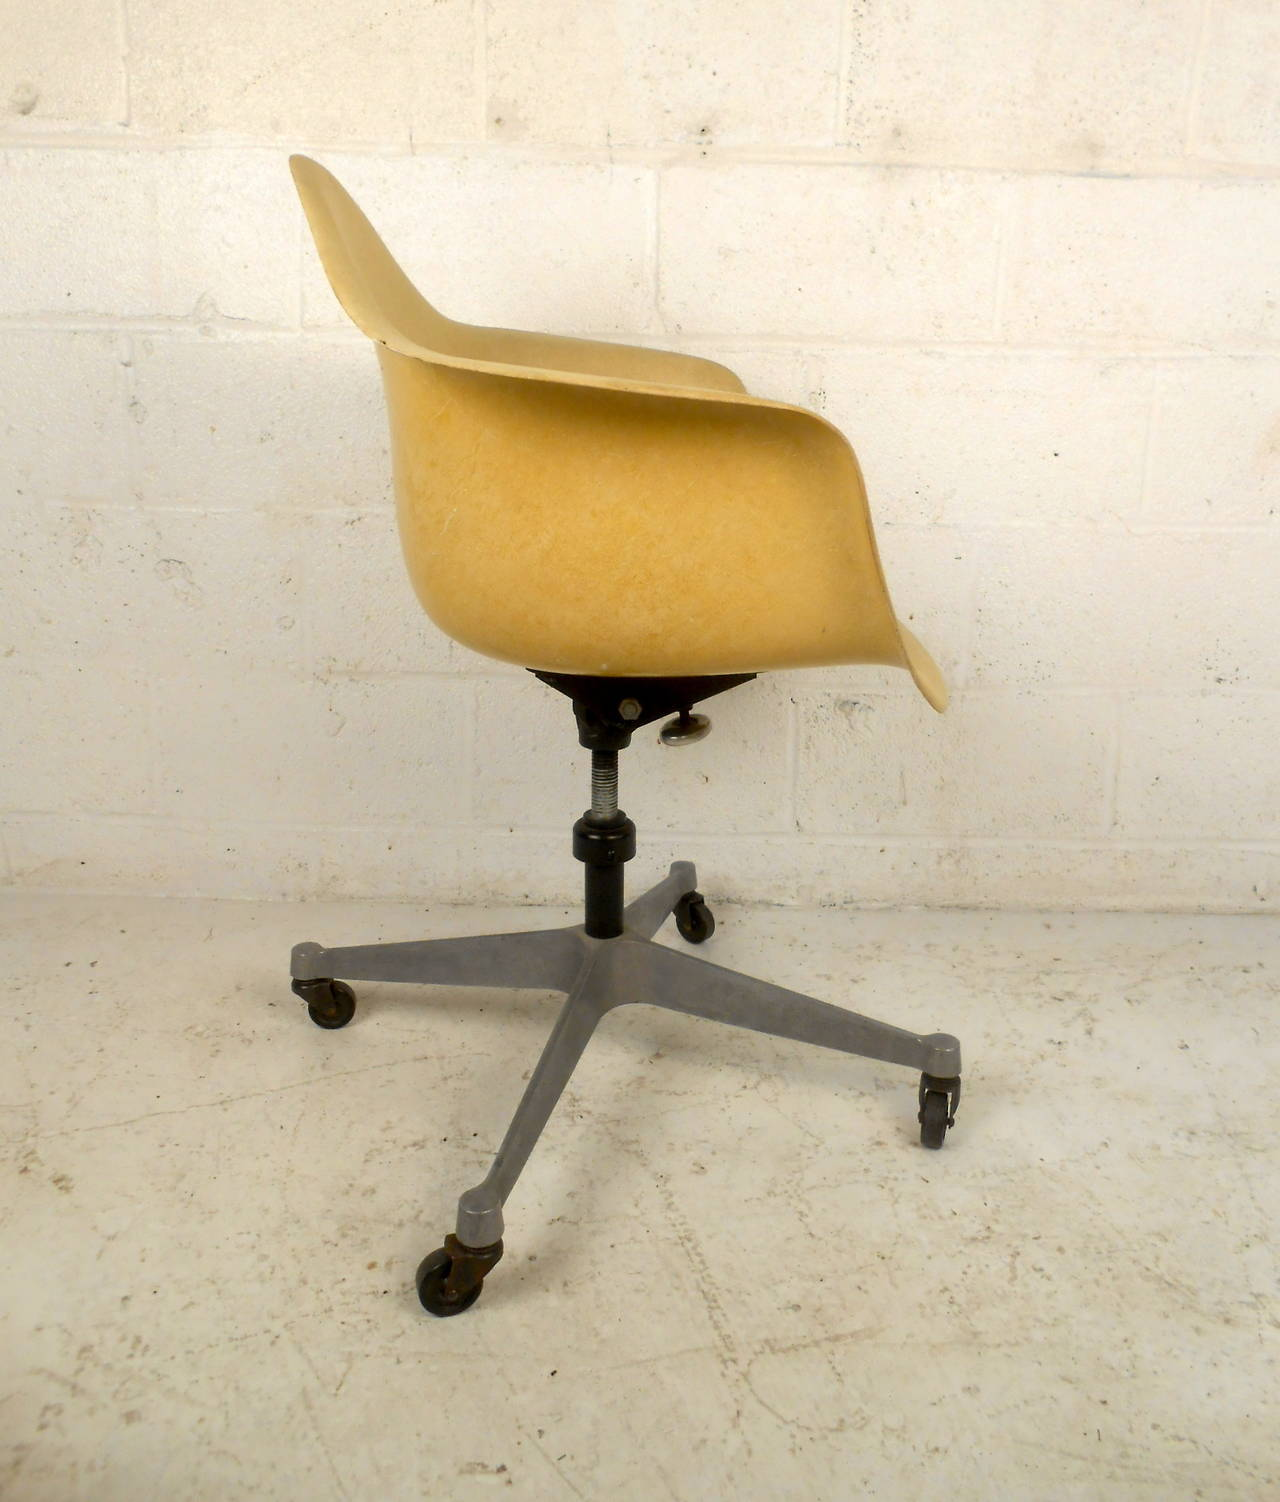 This Charles Eames Shell Chair For Herman Miller Features A Molded Fibergl Seat Adjule Height